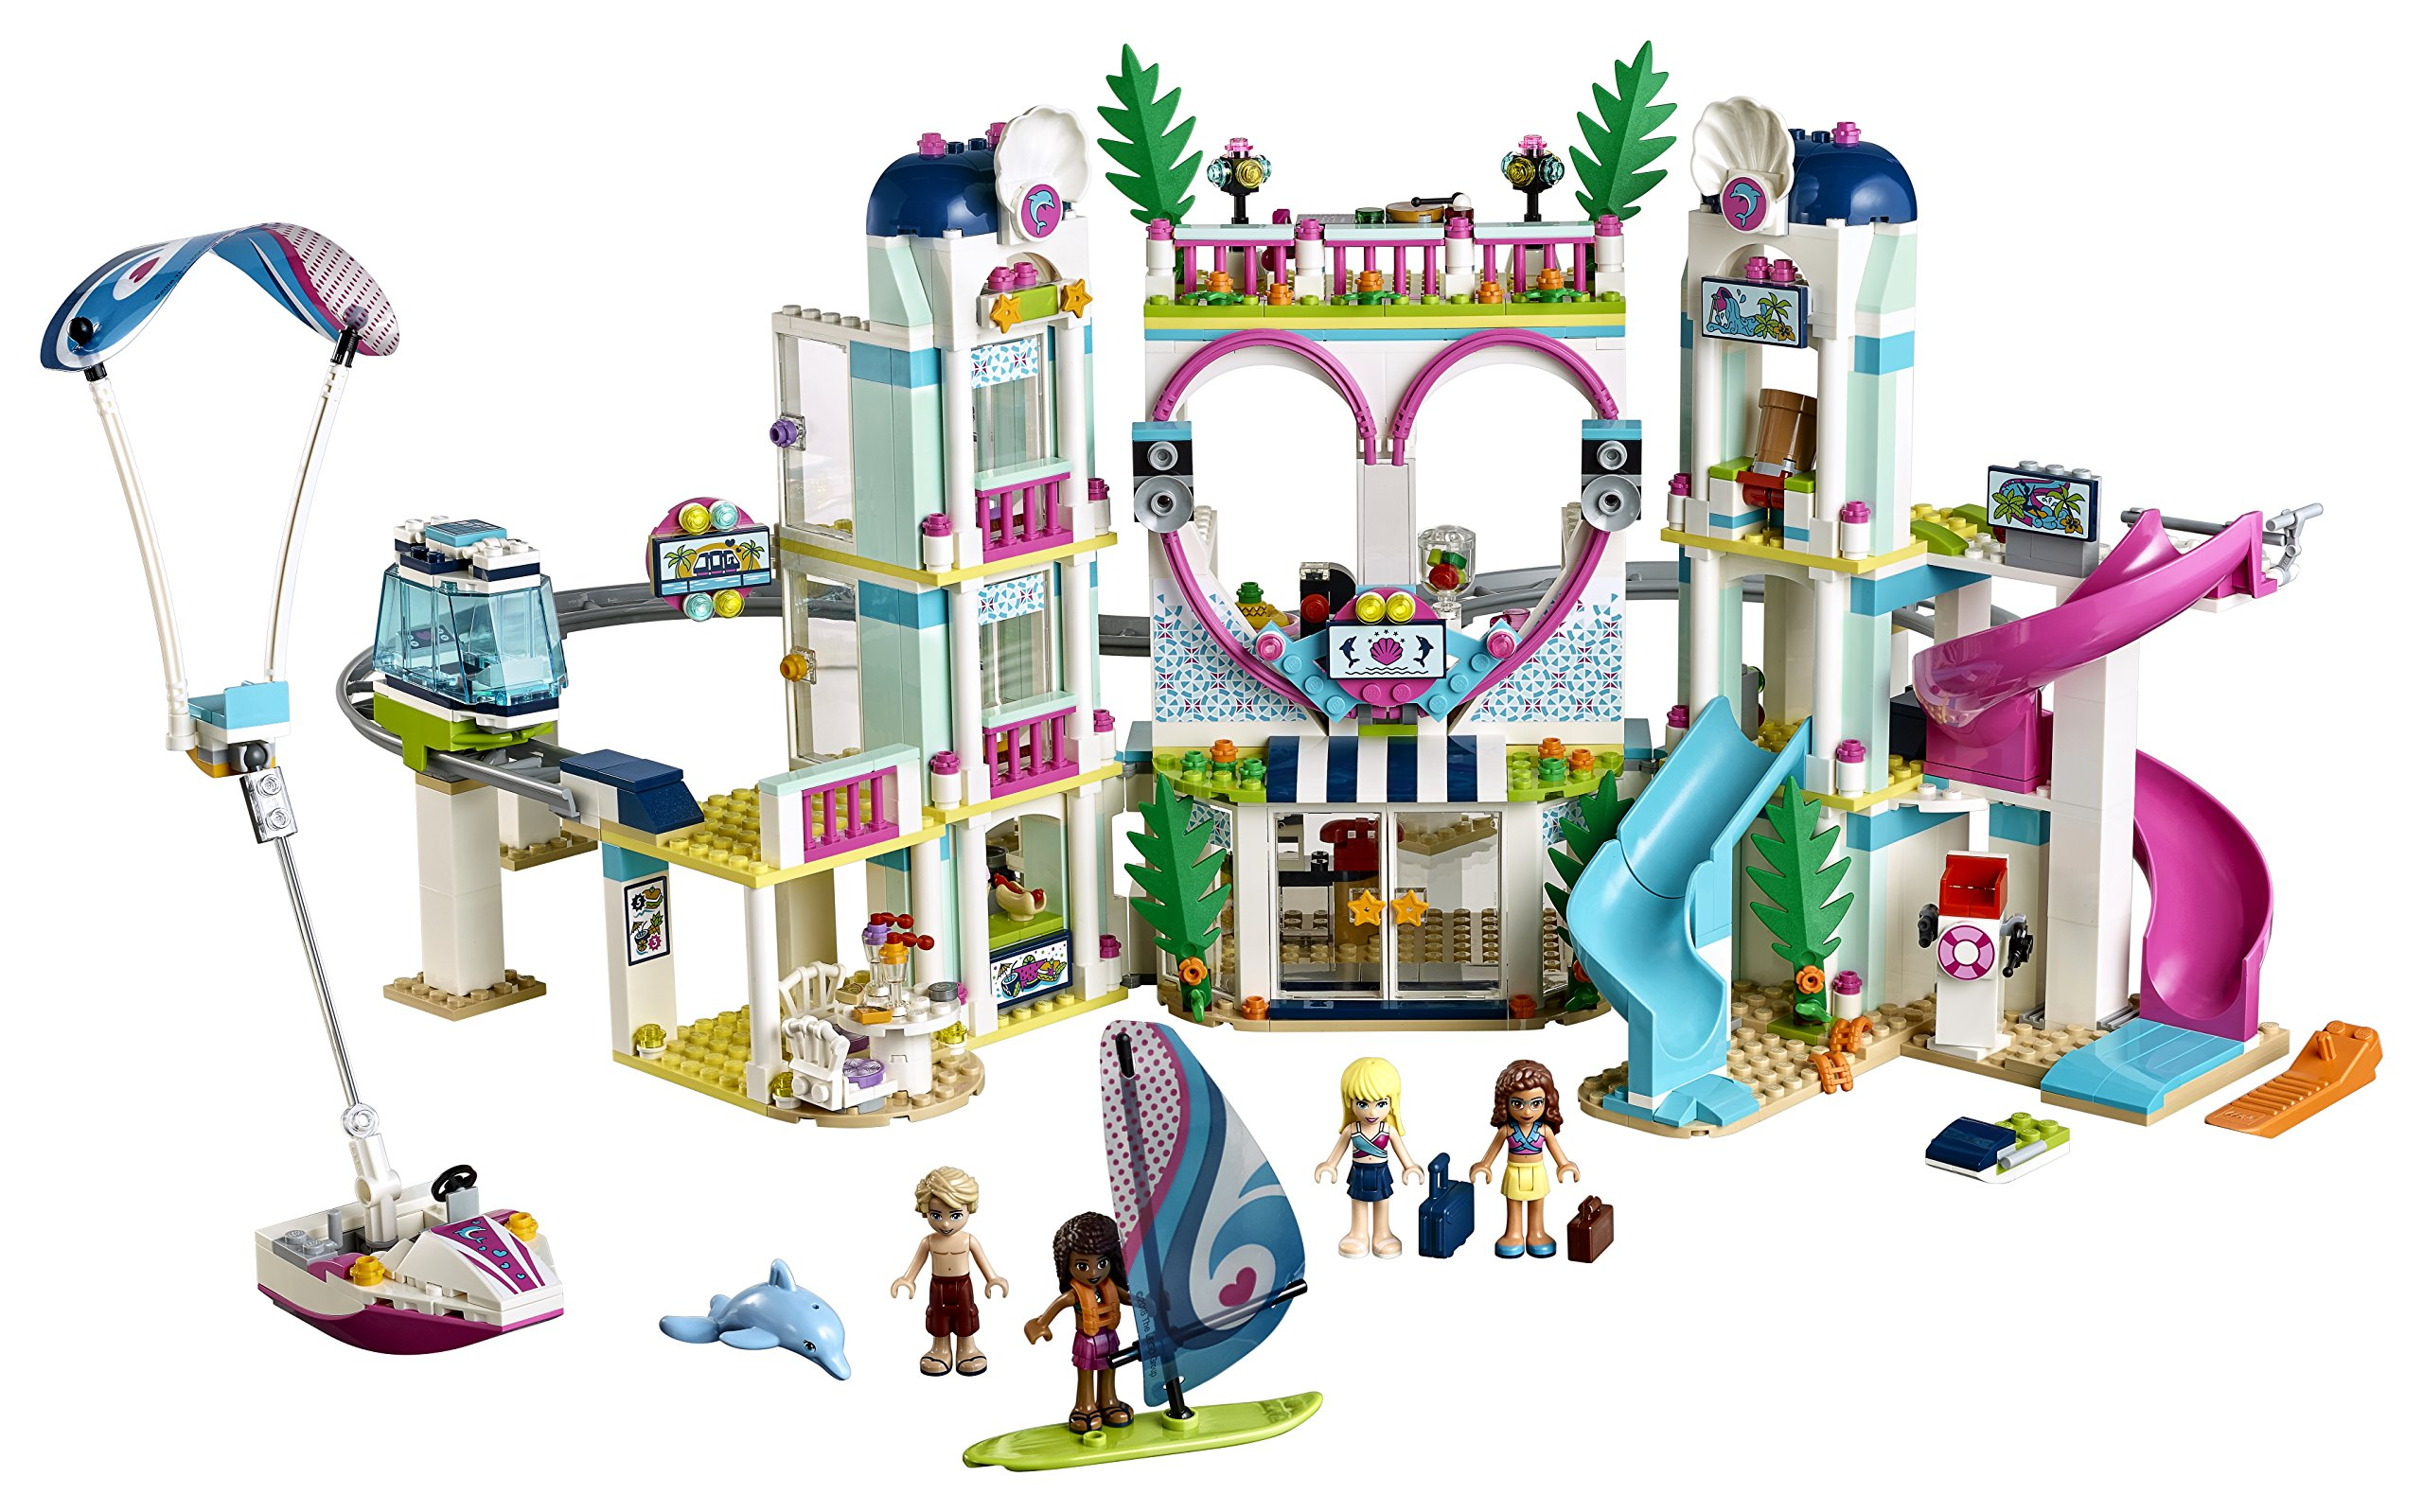 Lego Friends Il Resort di Heartlake City, 41347 2 spesavip